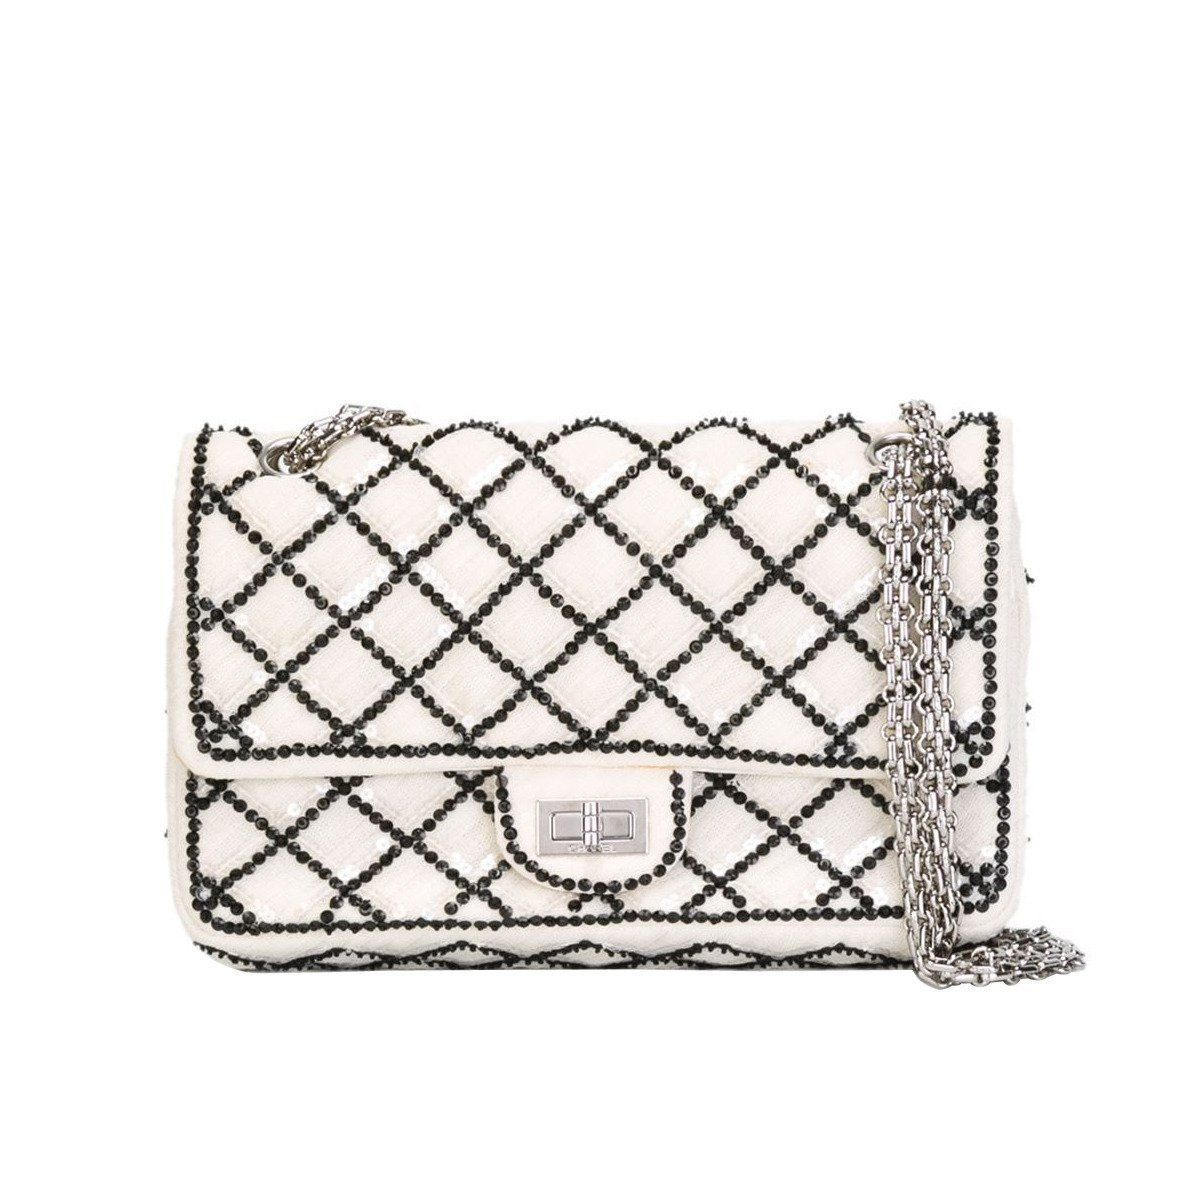 d12de991b096 For Sale on 1stdibs - This white and black cotton sequined flap shoulder bag  from Chanel features a foldover top with twist-lock closure, a quilted  effect, ...